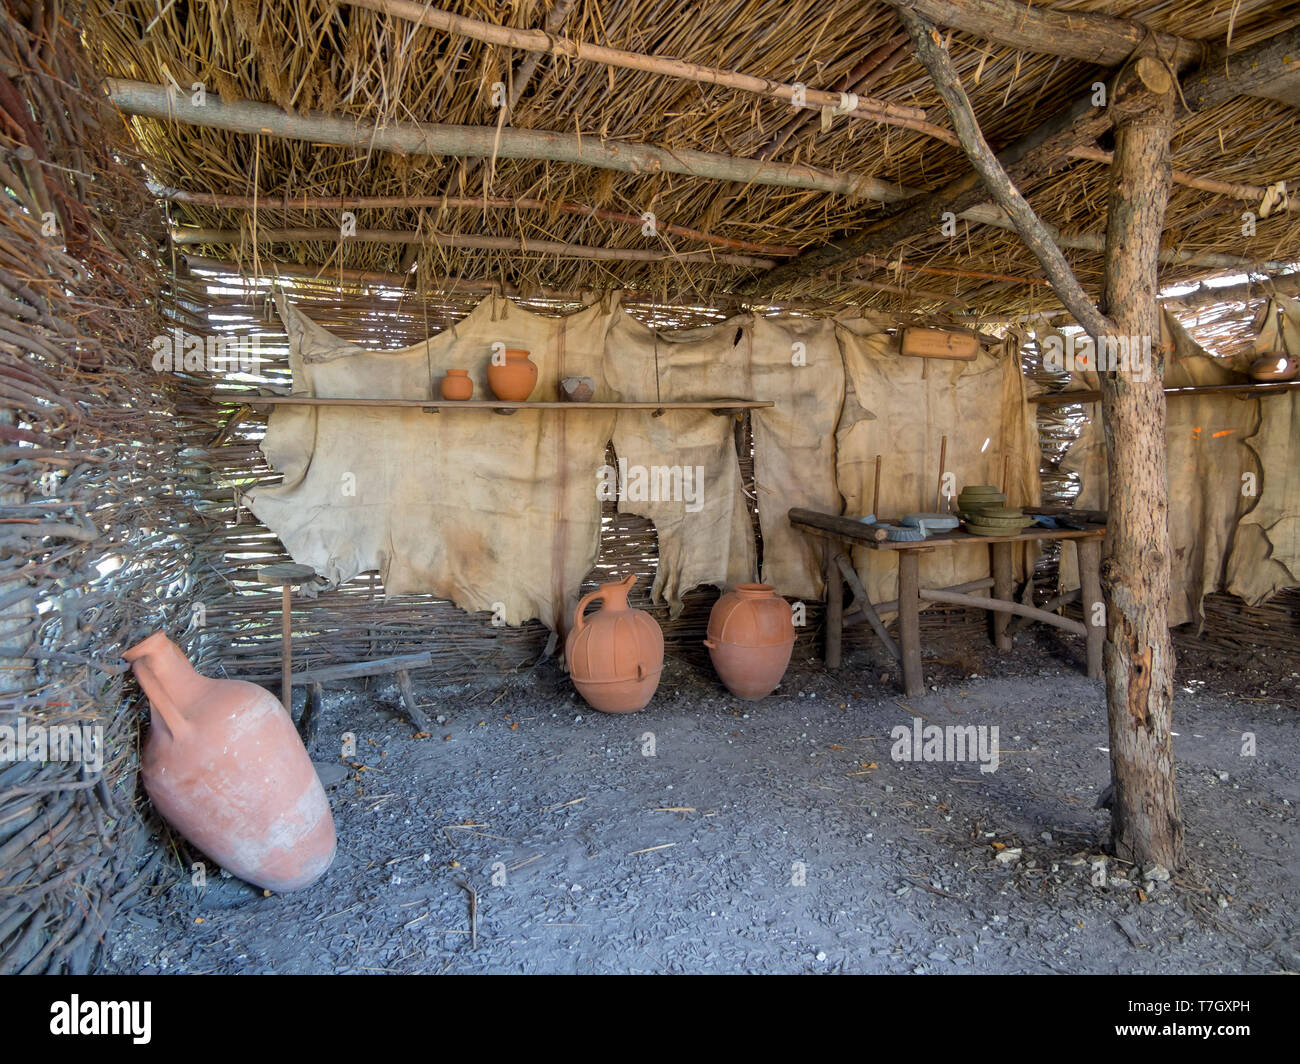 The premises of the ancient dwelling, view inside, the archaeological park 'From nomadic to the cities', Divnogorye, Voronezh region - Stock Image